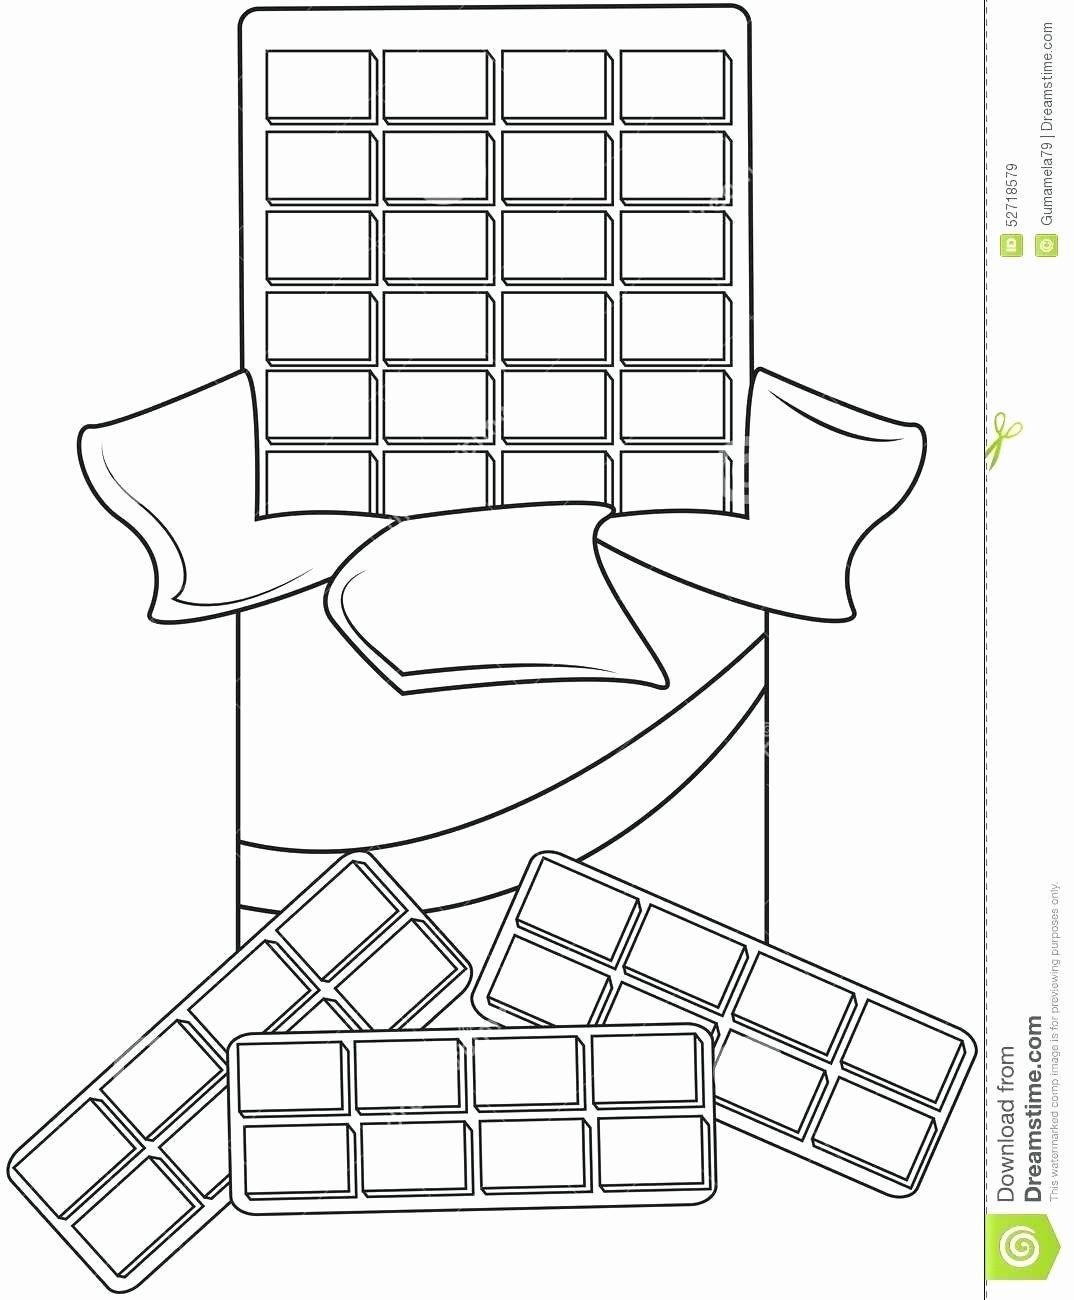 Chicken Nuggets Coloring Page Elegant Coloring Pages Candy Bar Superpage Chicken Nuggets Coloring Pages Food Coloring Pages